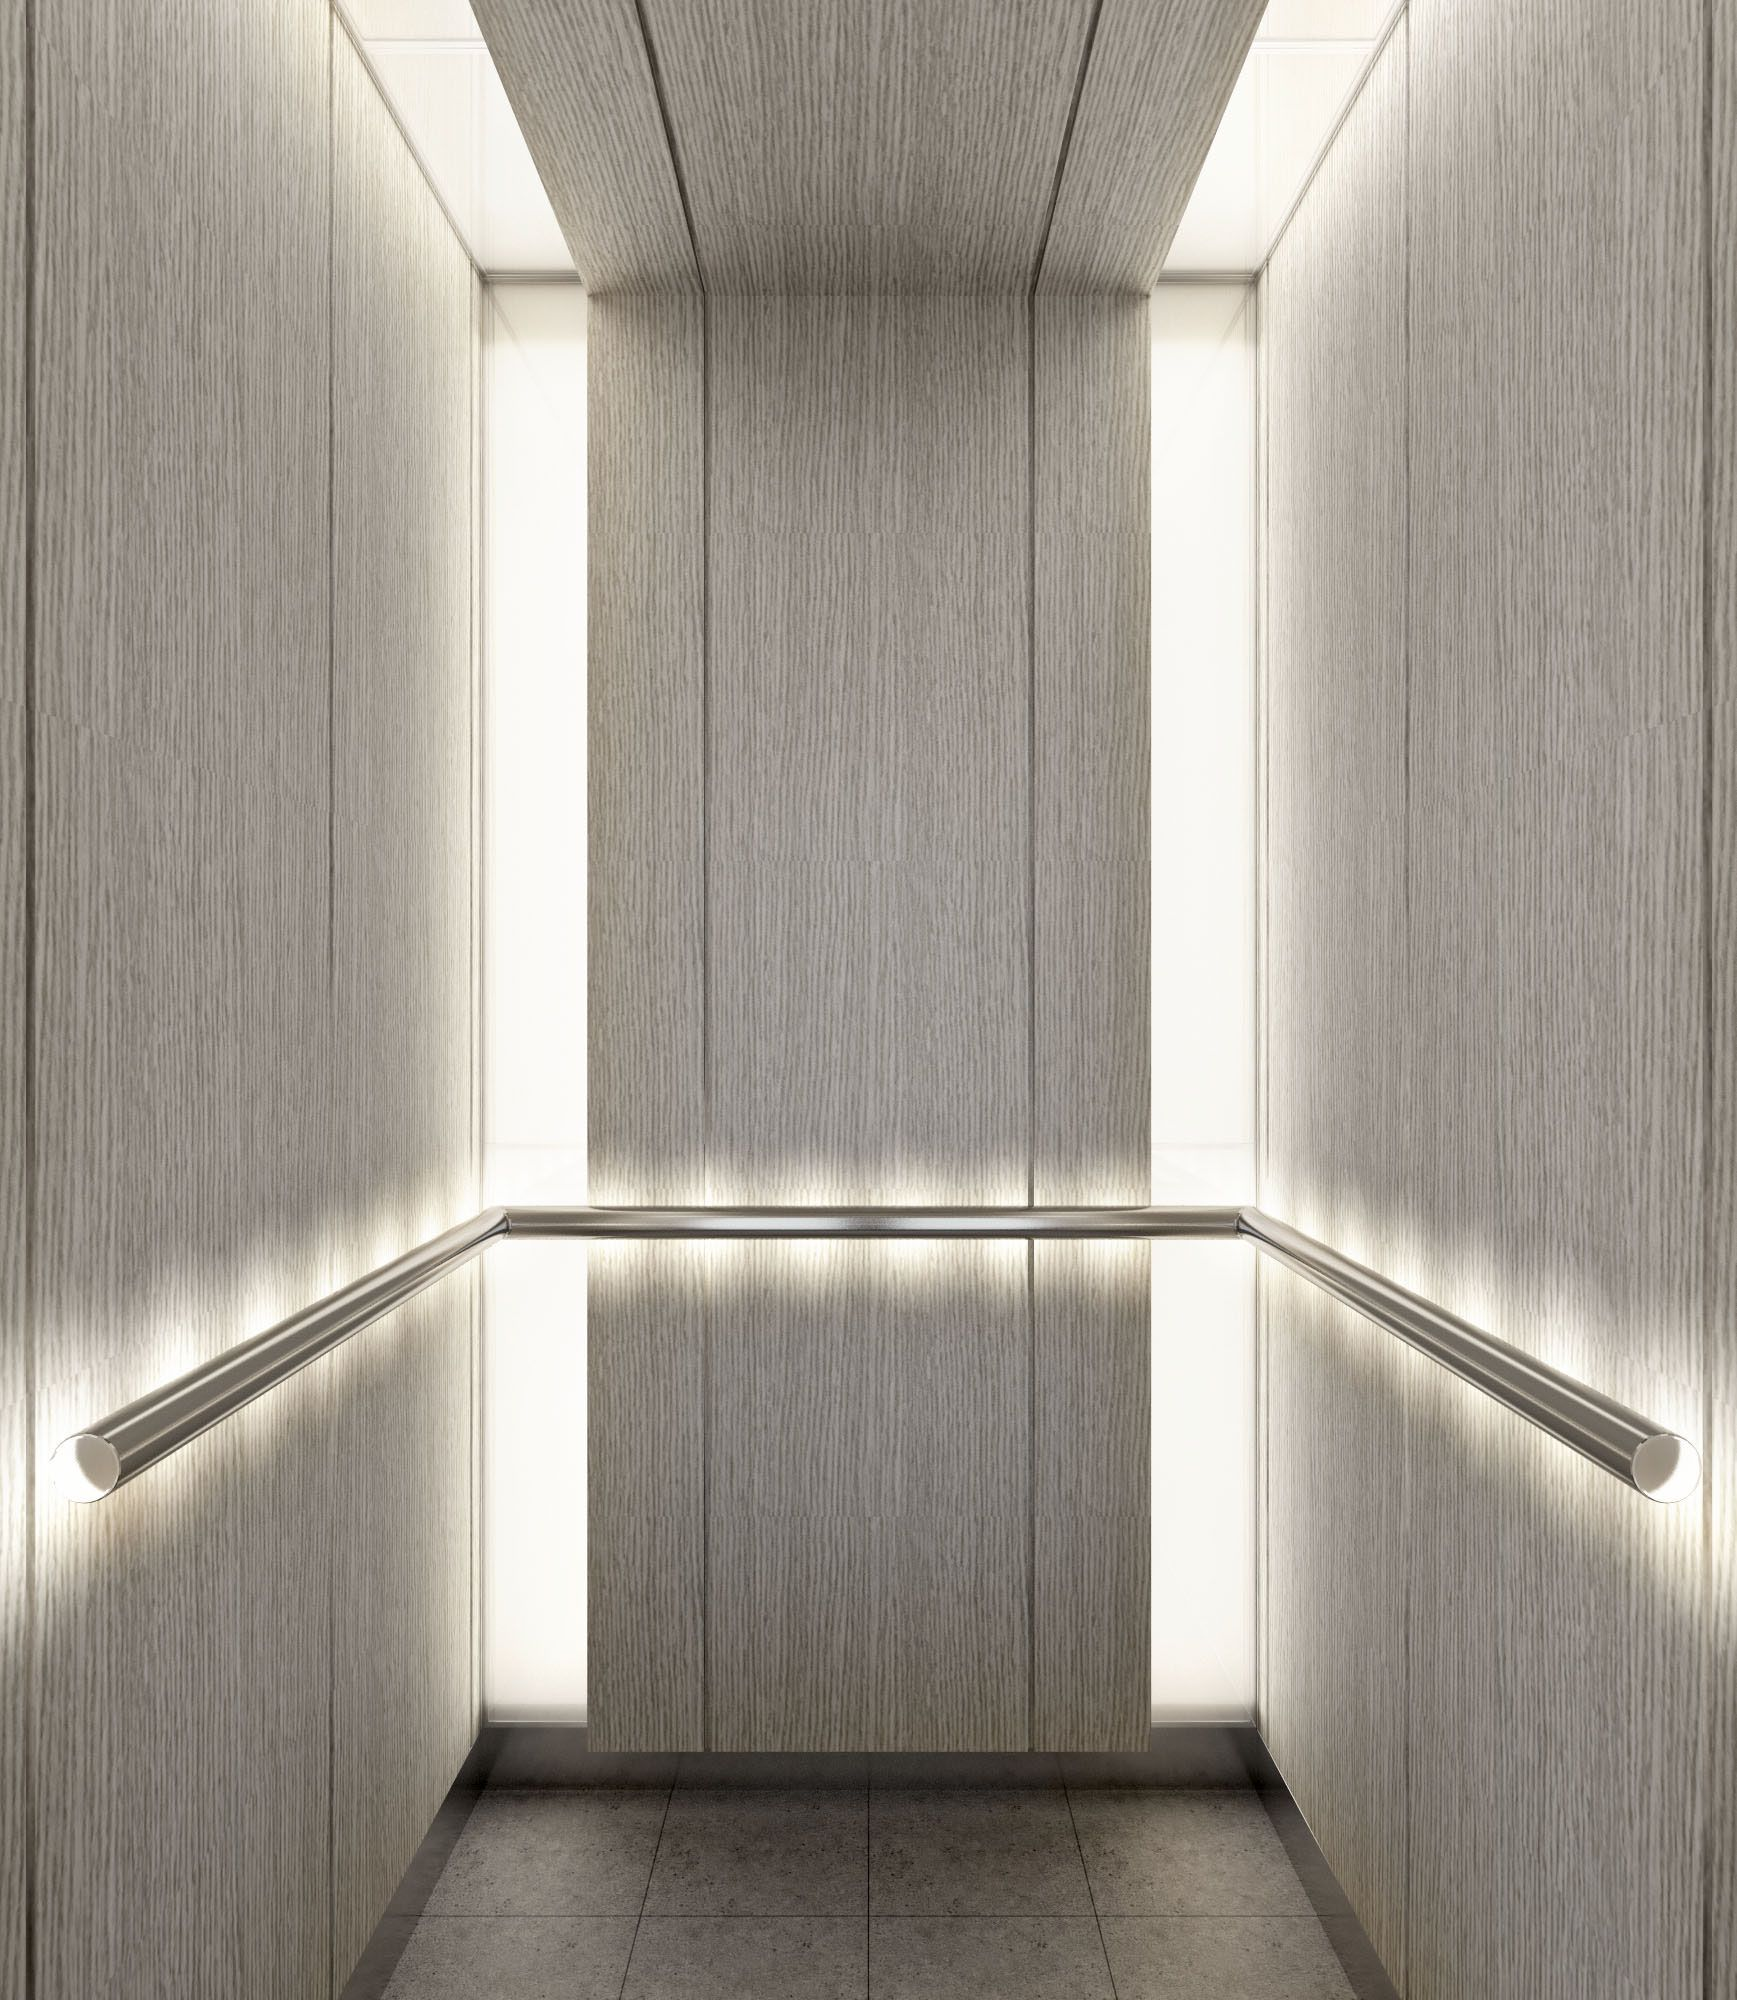 Elevator lobby and interior cab interior design ideas for Elevator flooring options